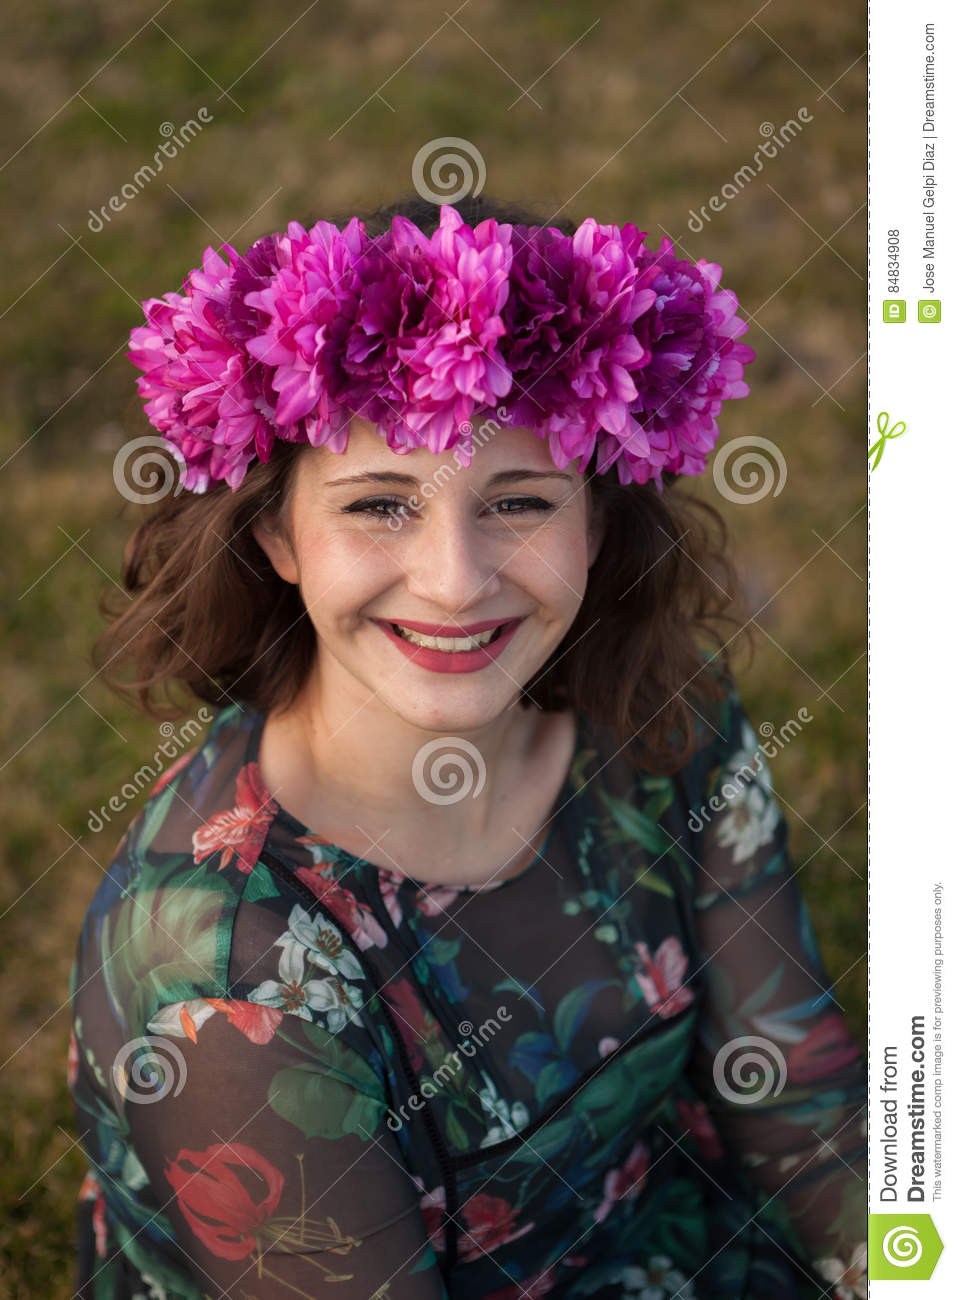 Beautiful curvy girl with a flower crown stock photo image of beautiful curvy girl with a flower crown izmirmasajfo